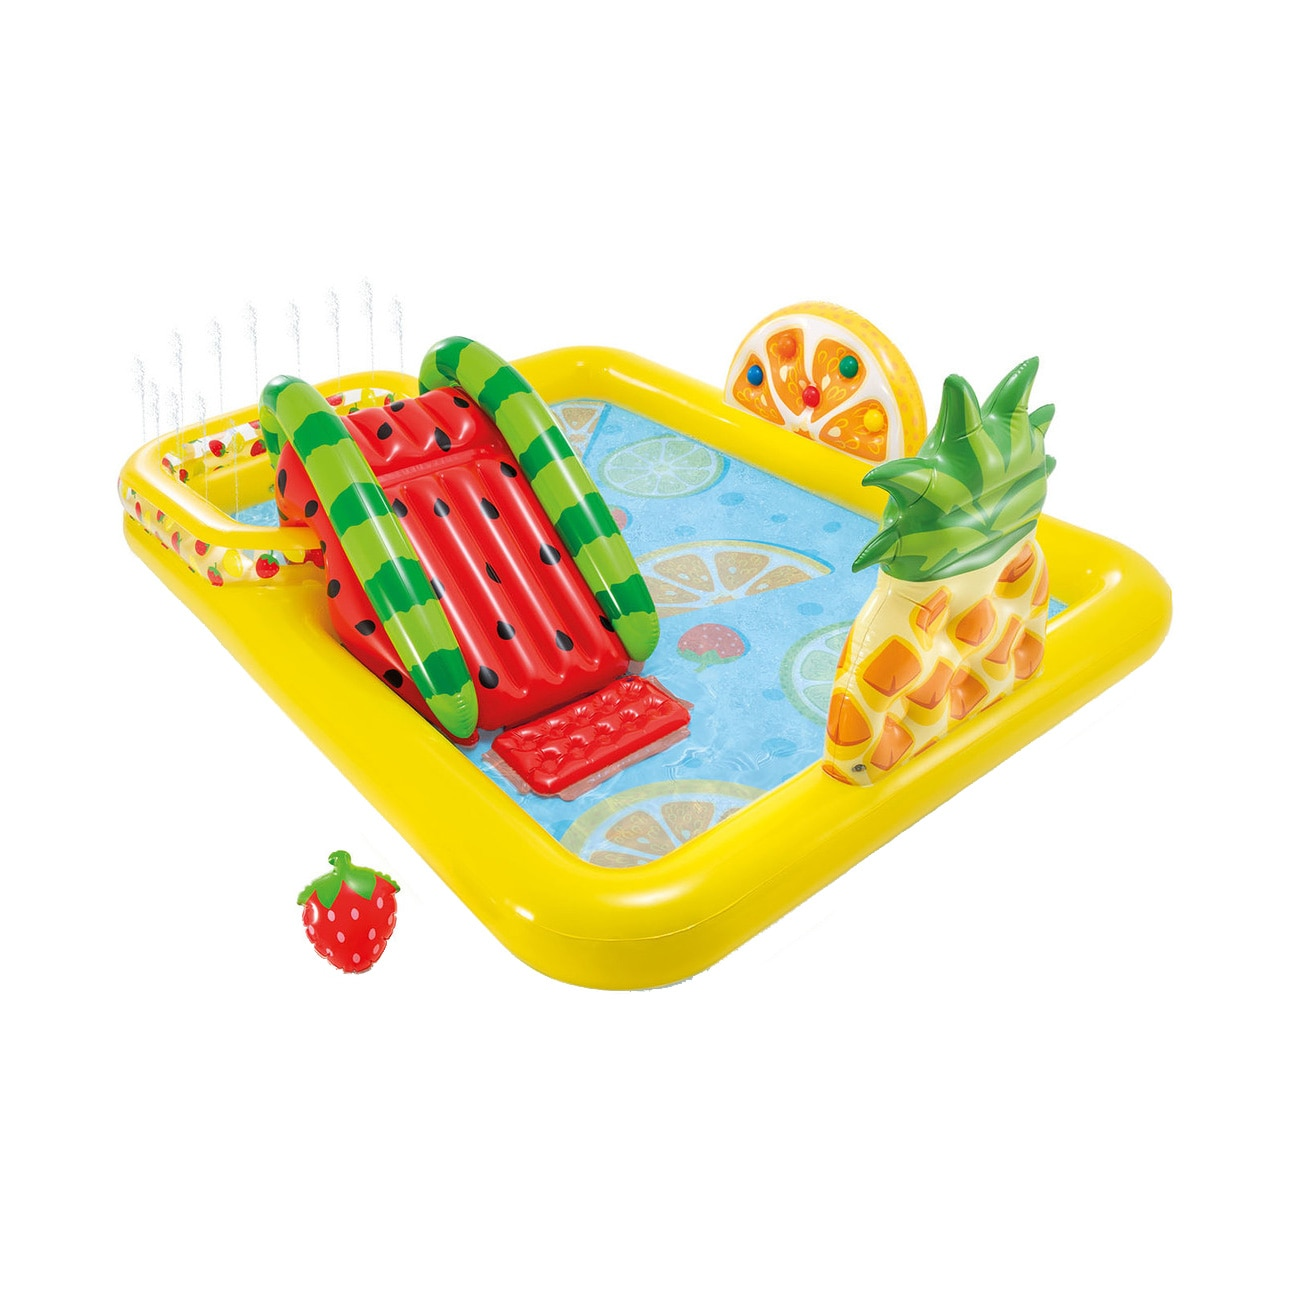 Fotografie Piscina gonflabila Intex - Fun'n Fruity, 244 x 191 x 91 cm